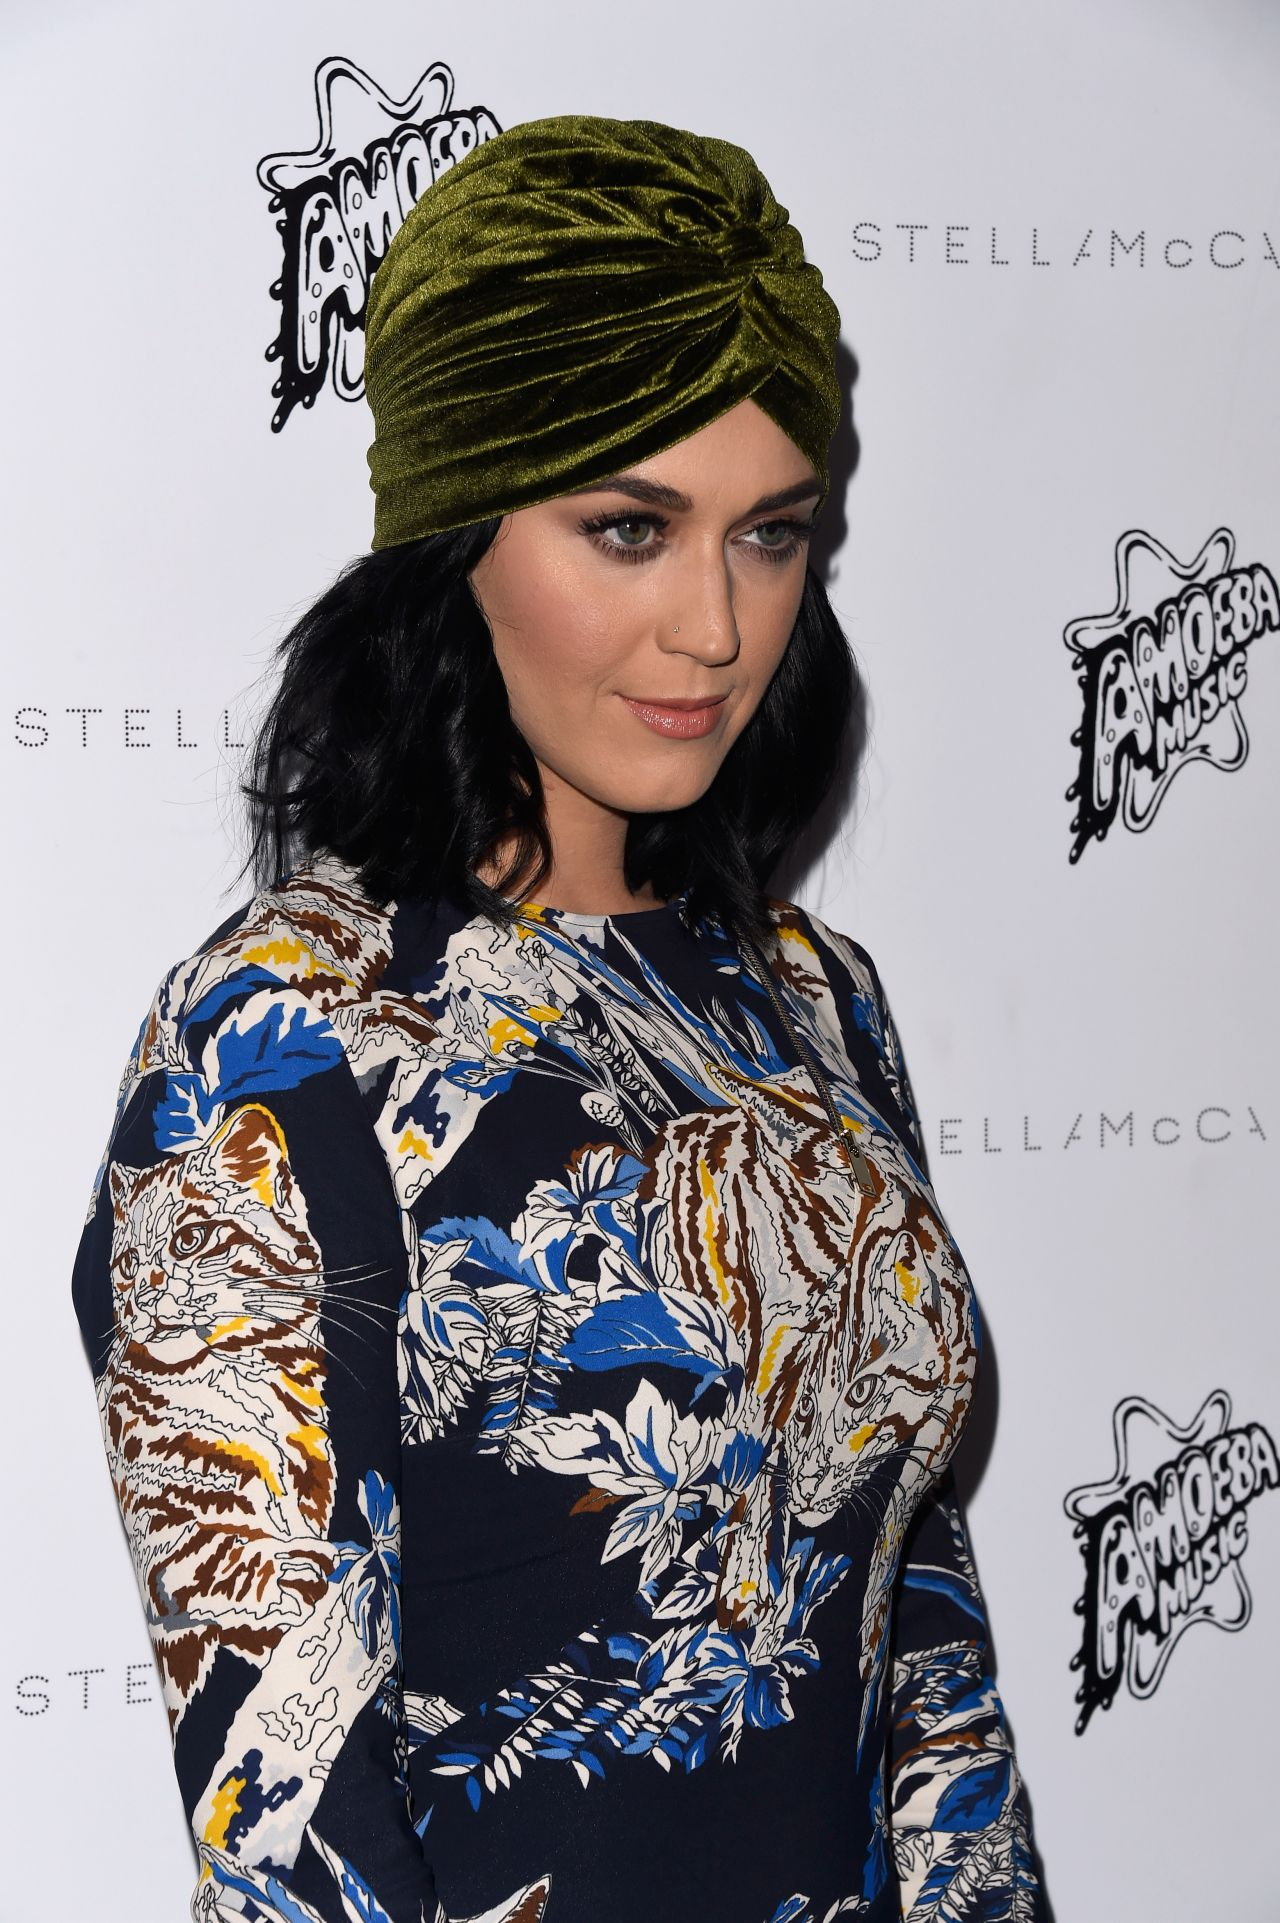 katy-perry-stella-mccartney-autumn-2016-presentation-in-los-angeles-ca-15